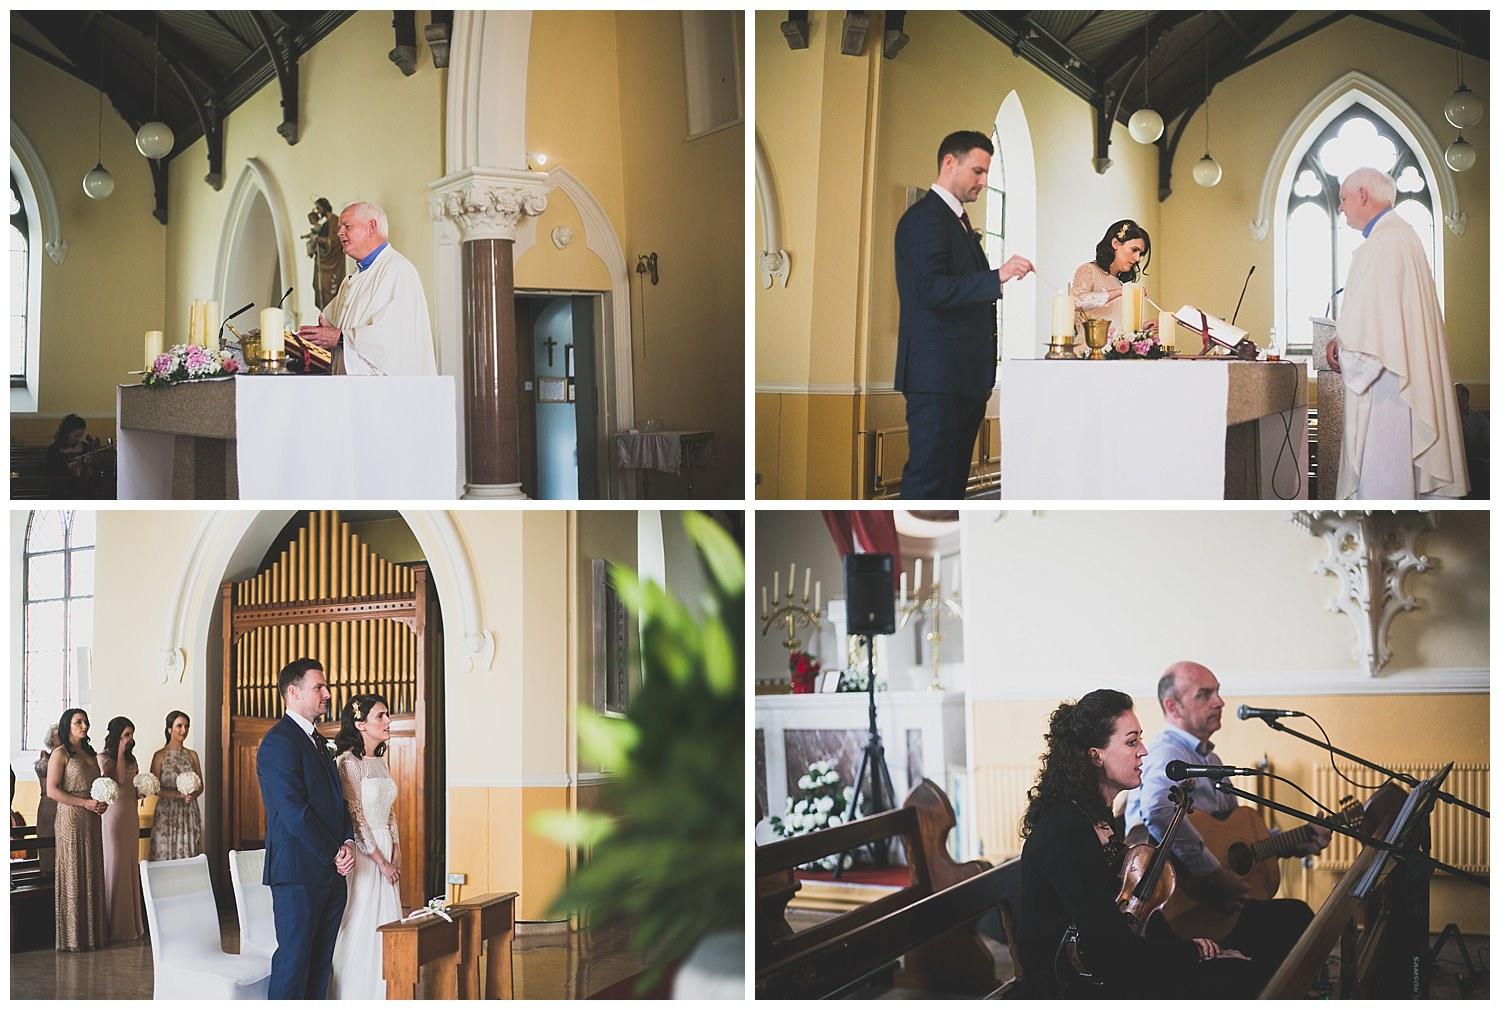 St nicholas of myra wedding